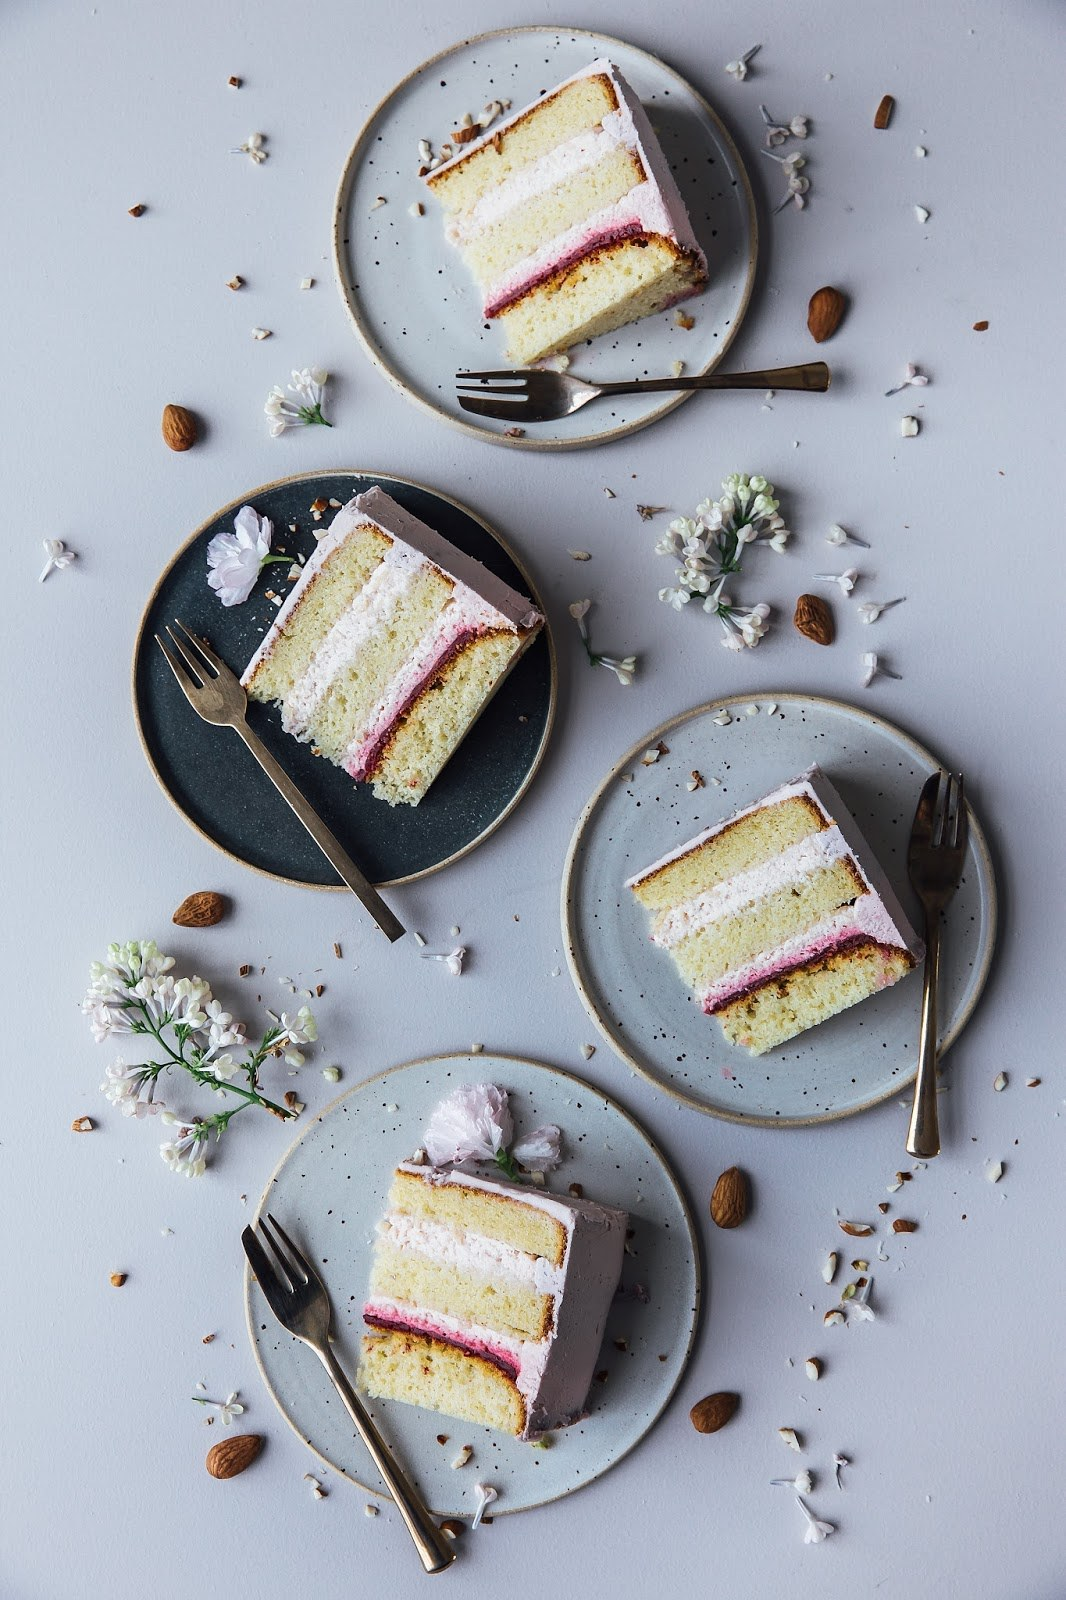 Gluten Free Rhubarb Raspberry Cake A Moodboard For Farrow Ball